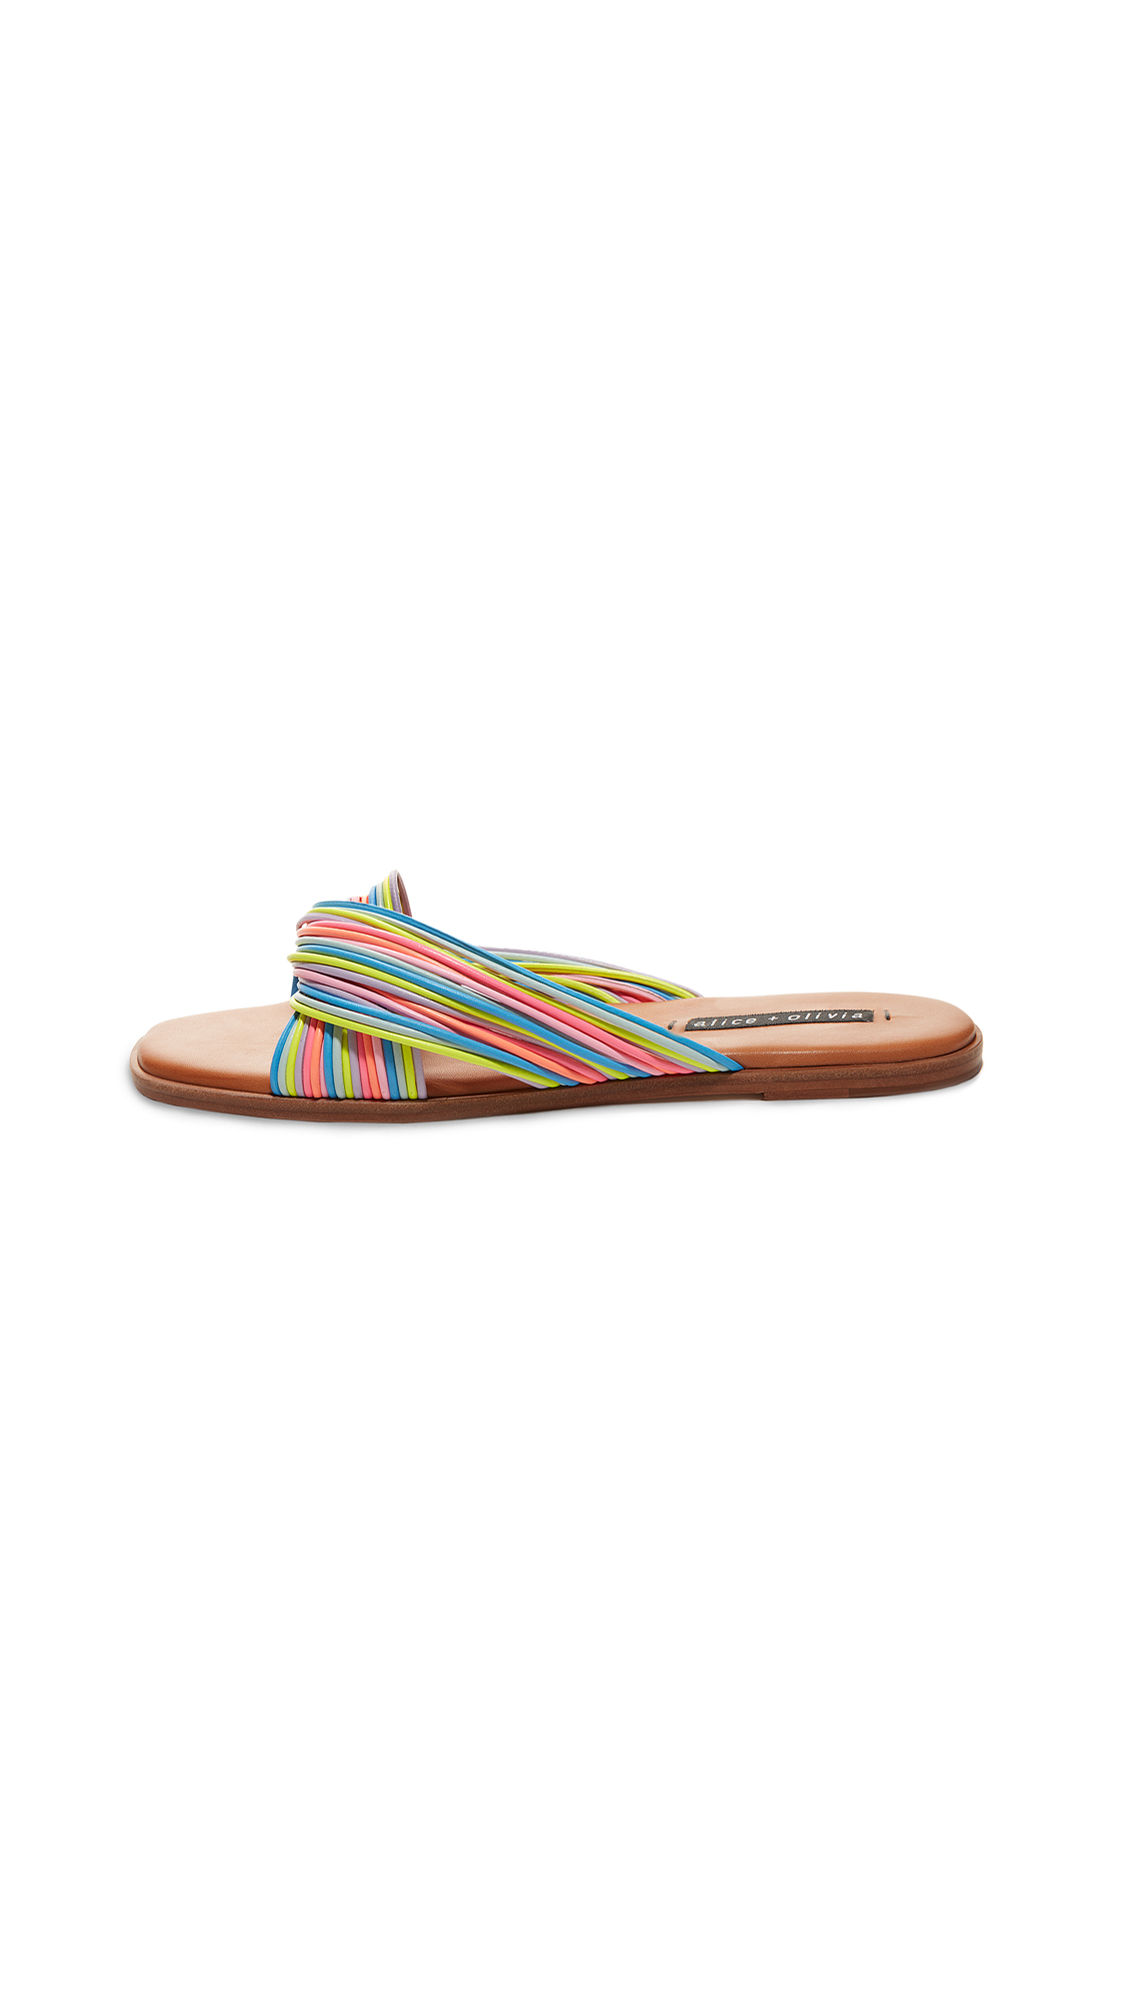 Buy alice + olivia Coree Slides online, shop alice + olivia